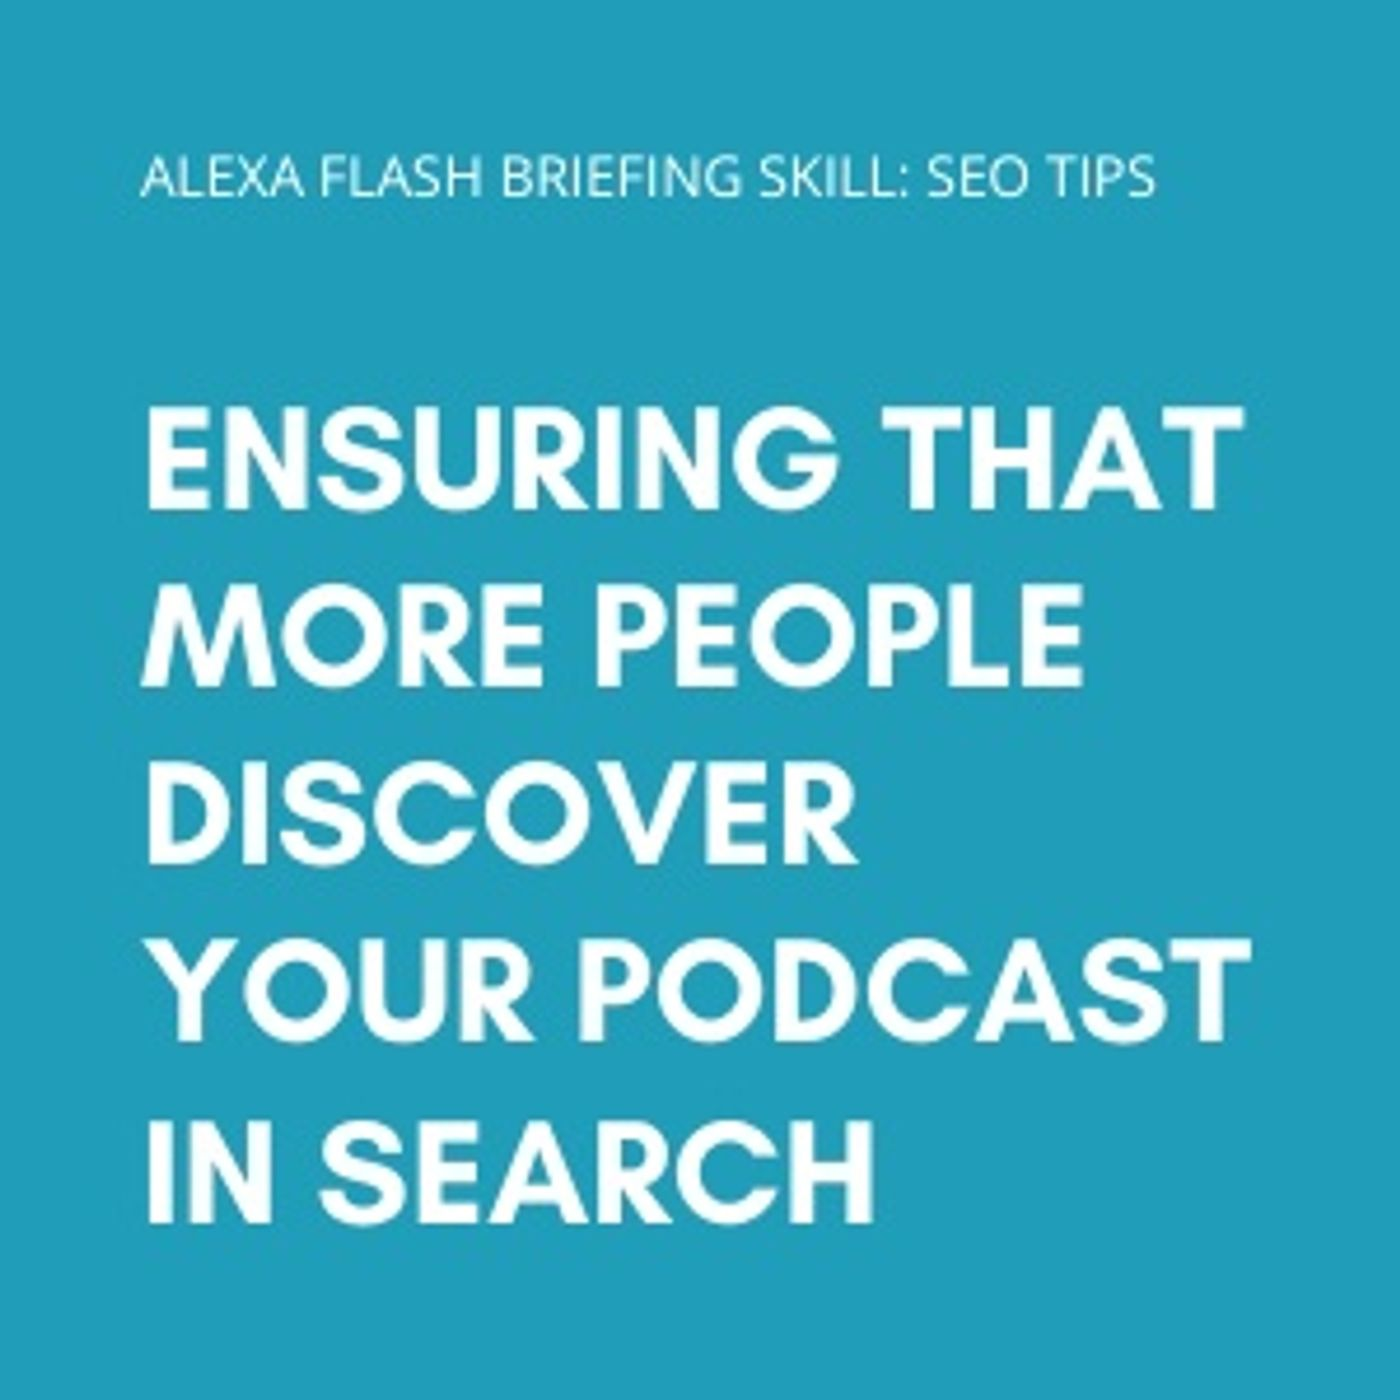 Ensuring that more people discover your podcast in search